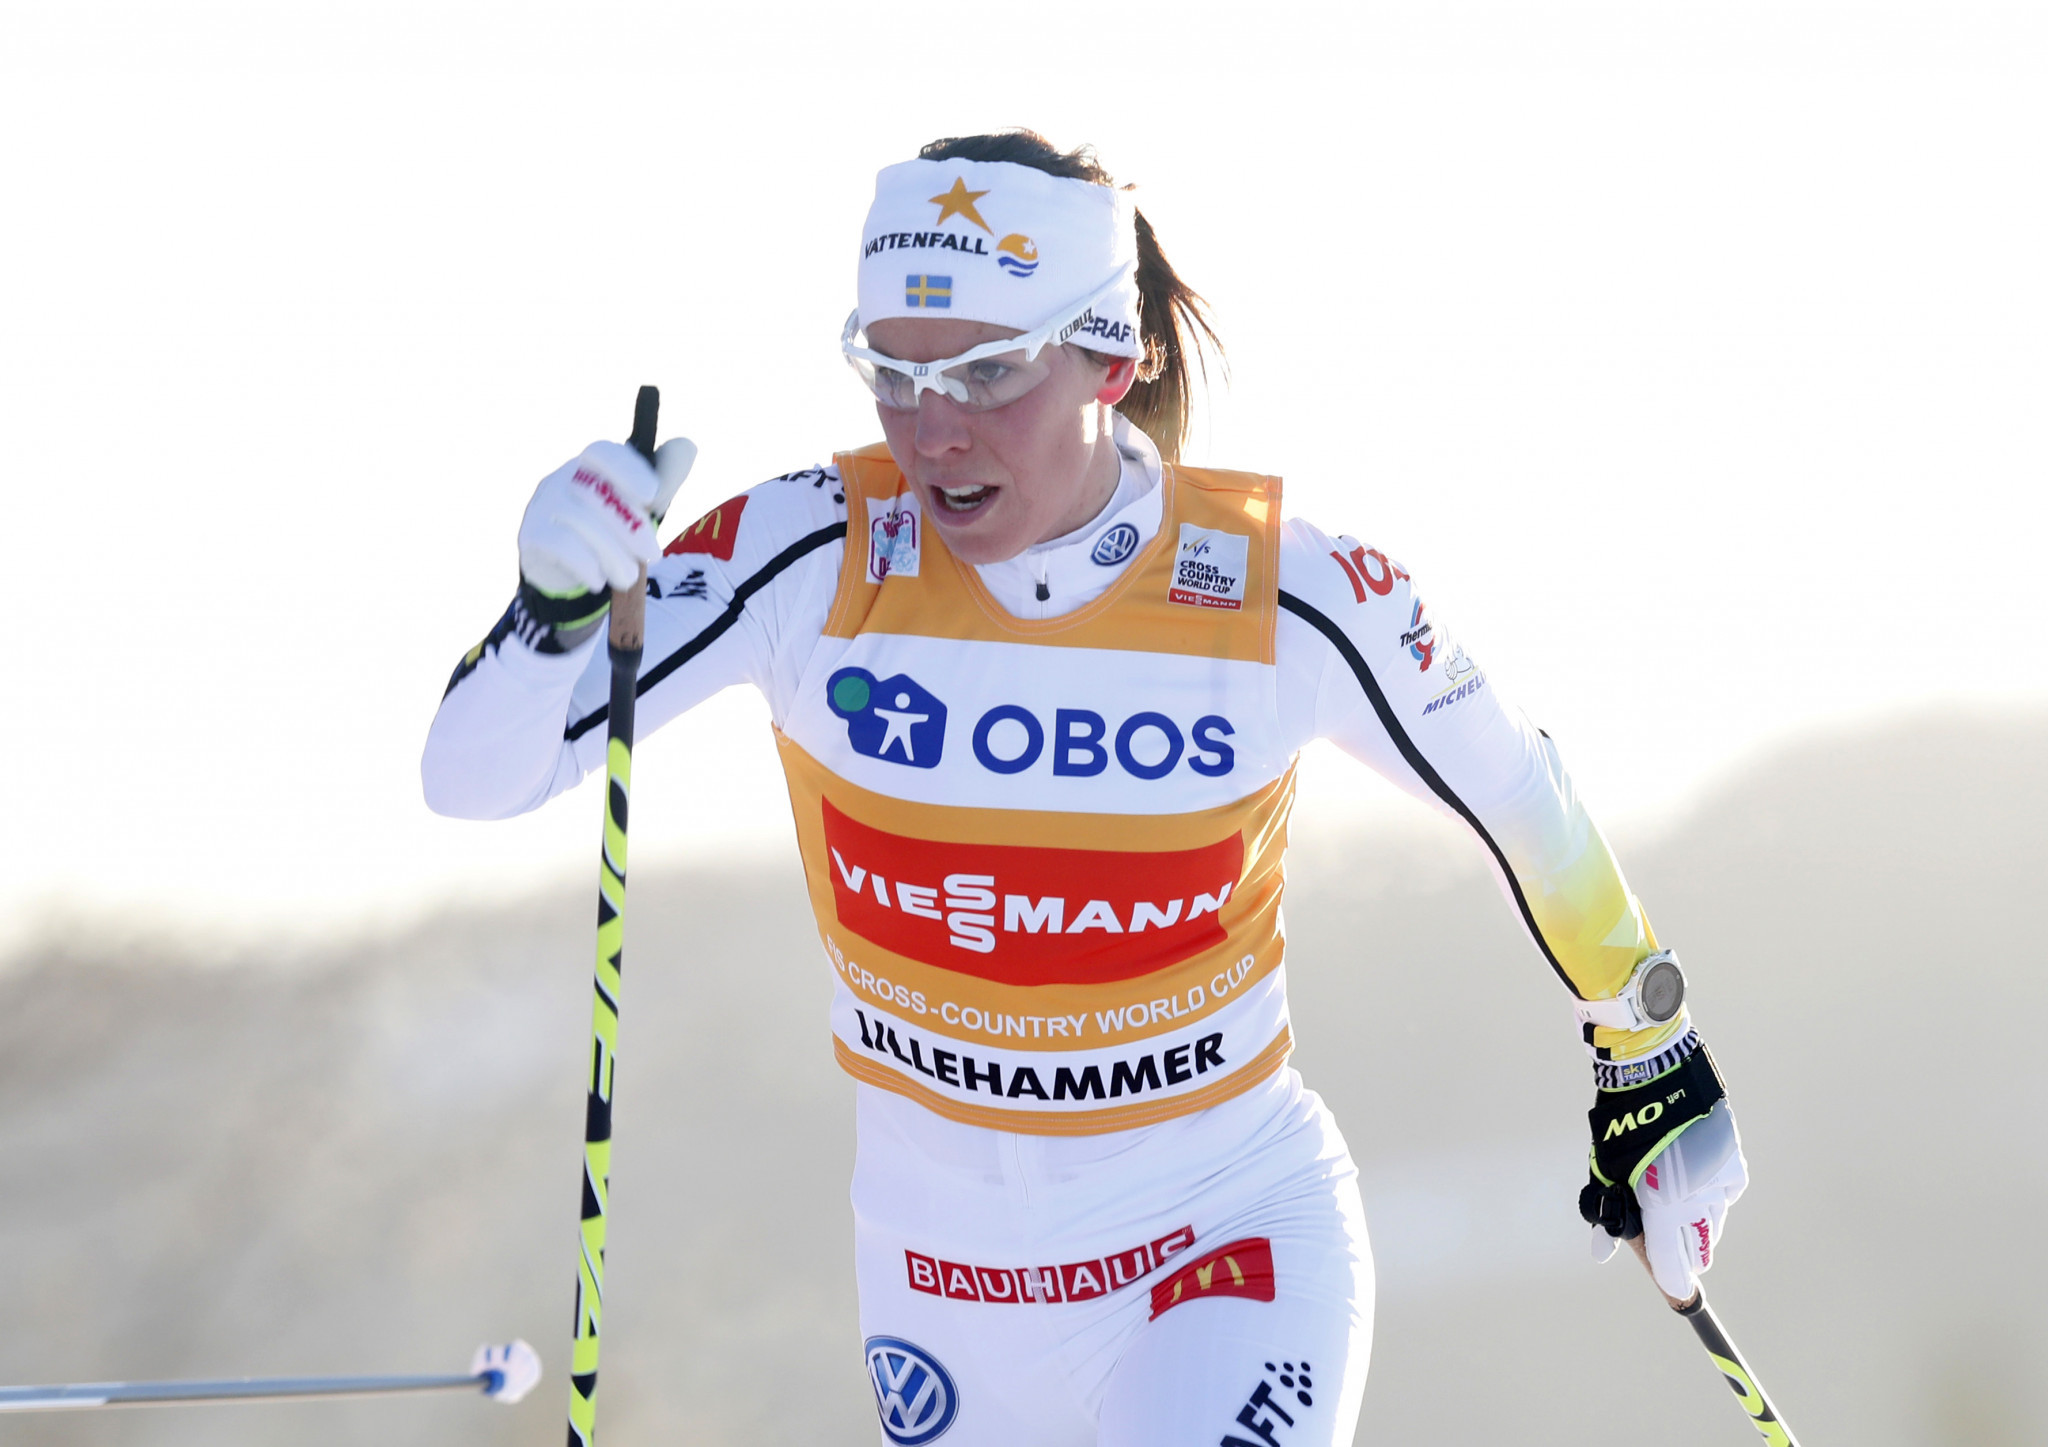 Sweden's Charlotte Kalla triumphed in the women's race as she claimed her maiden World Cup skiathlon success ©Getty Images